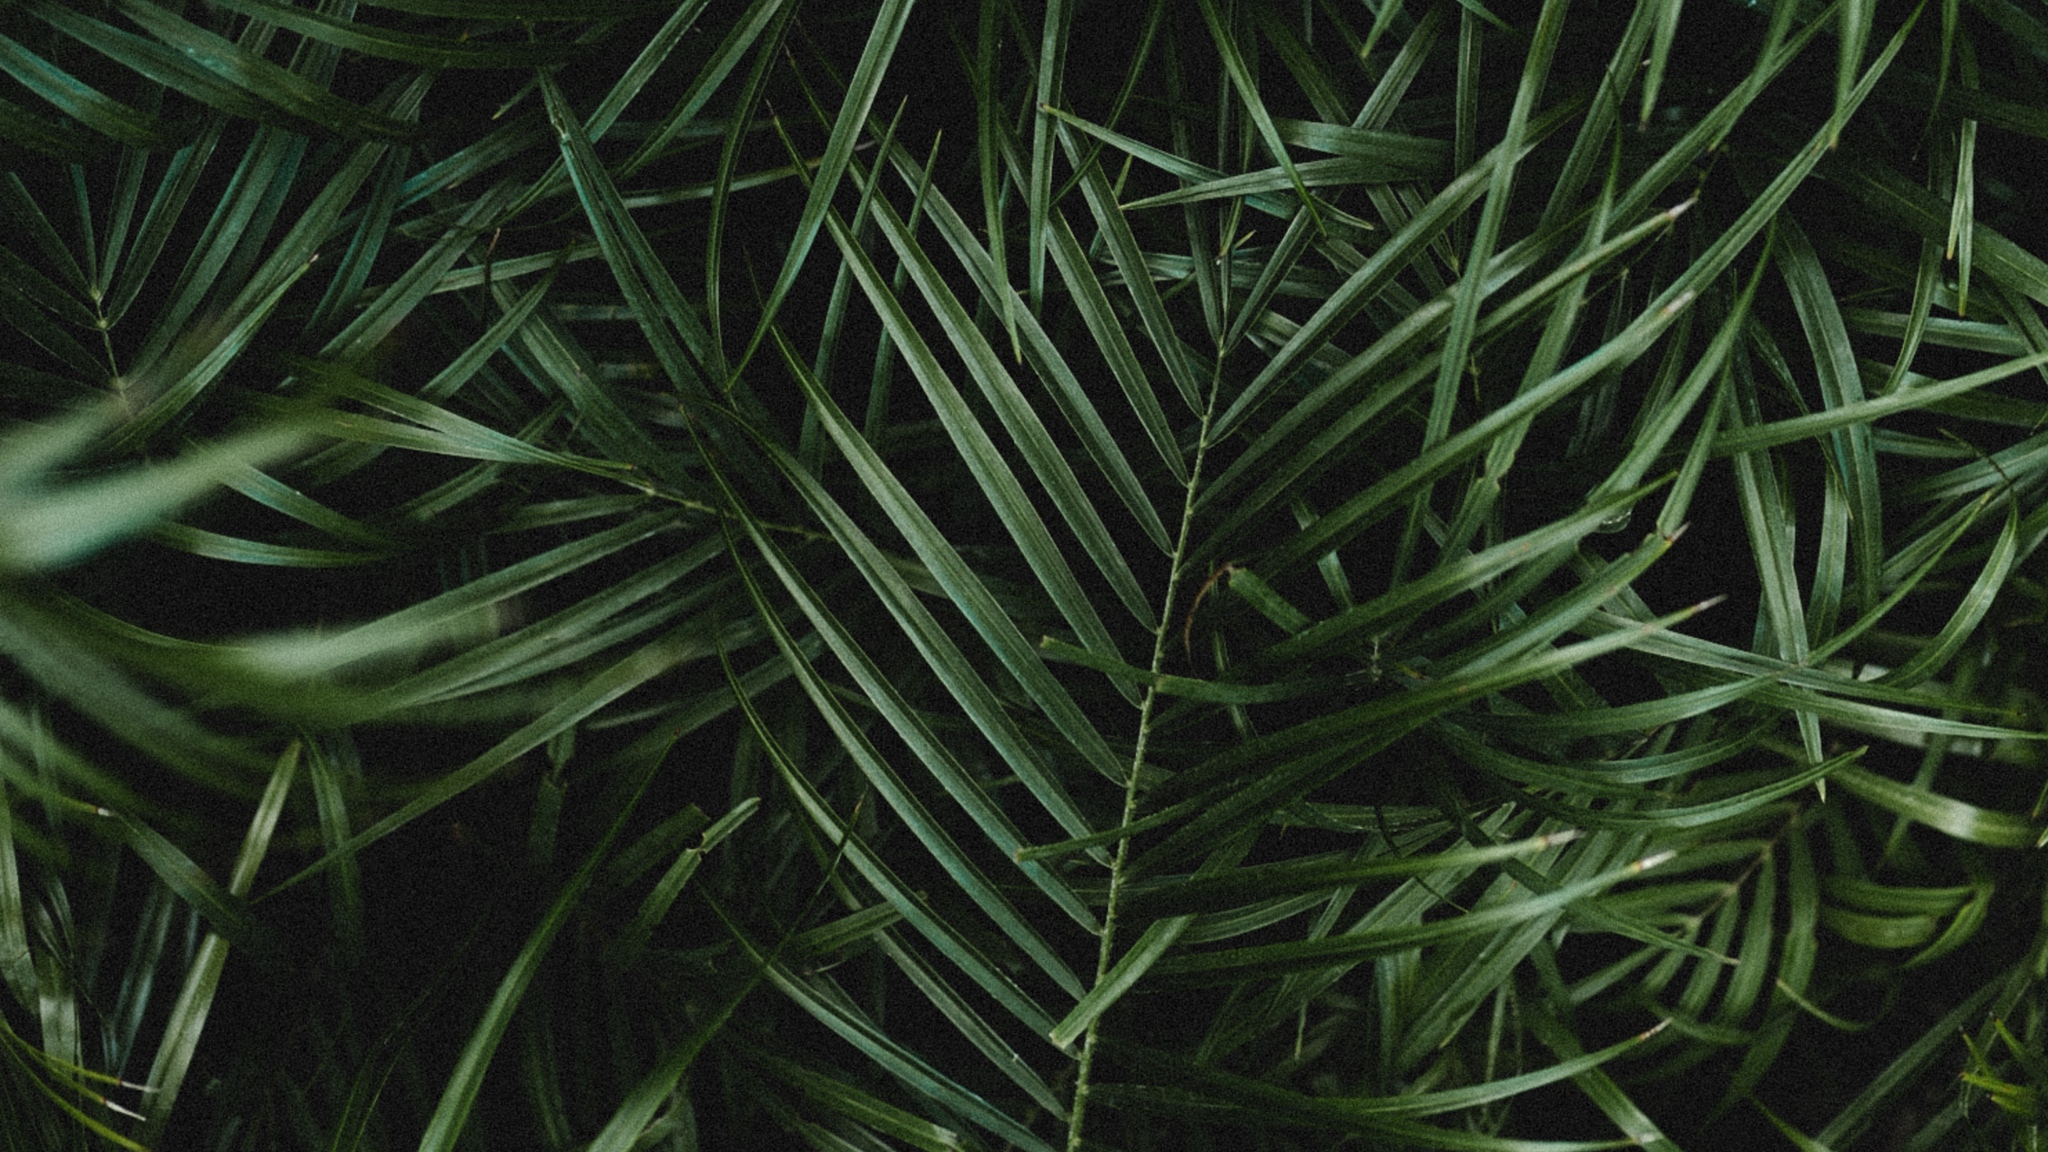 Wallpaper Palm Leaves Branches Plant Green Dark Palm Leaves Wallpaper Dark 2549779 Hd Wallpaper Backgrounds Download